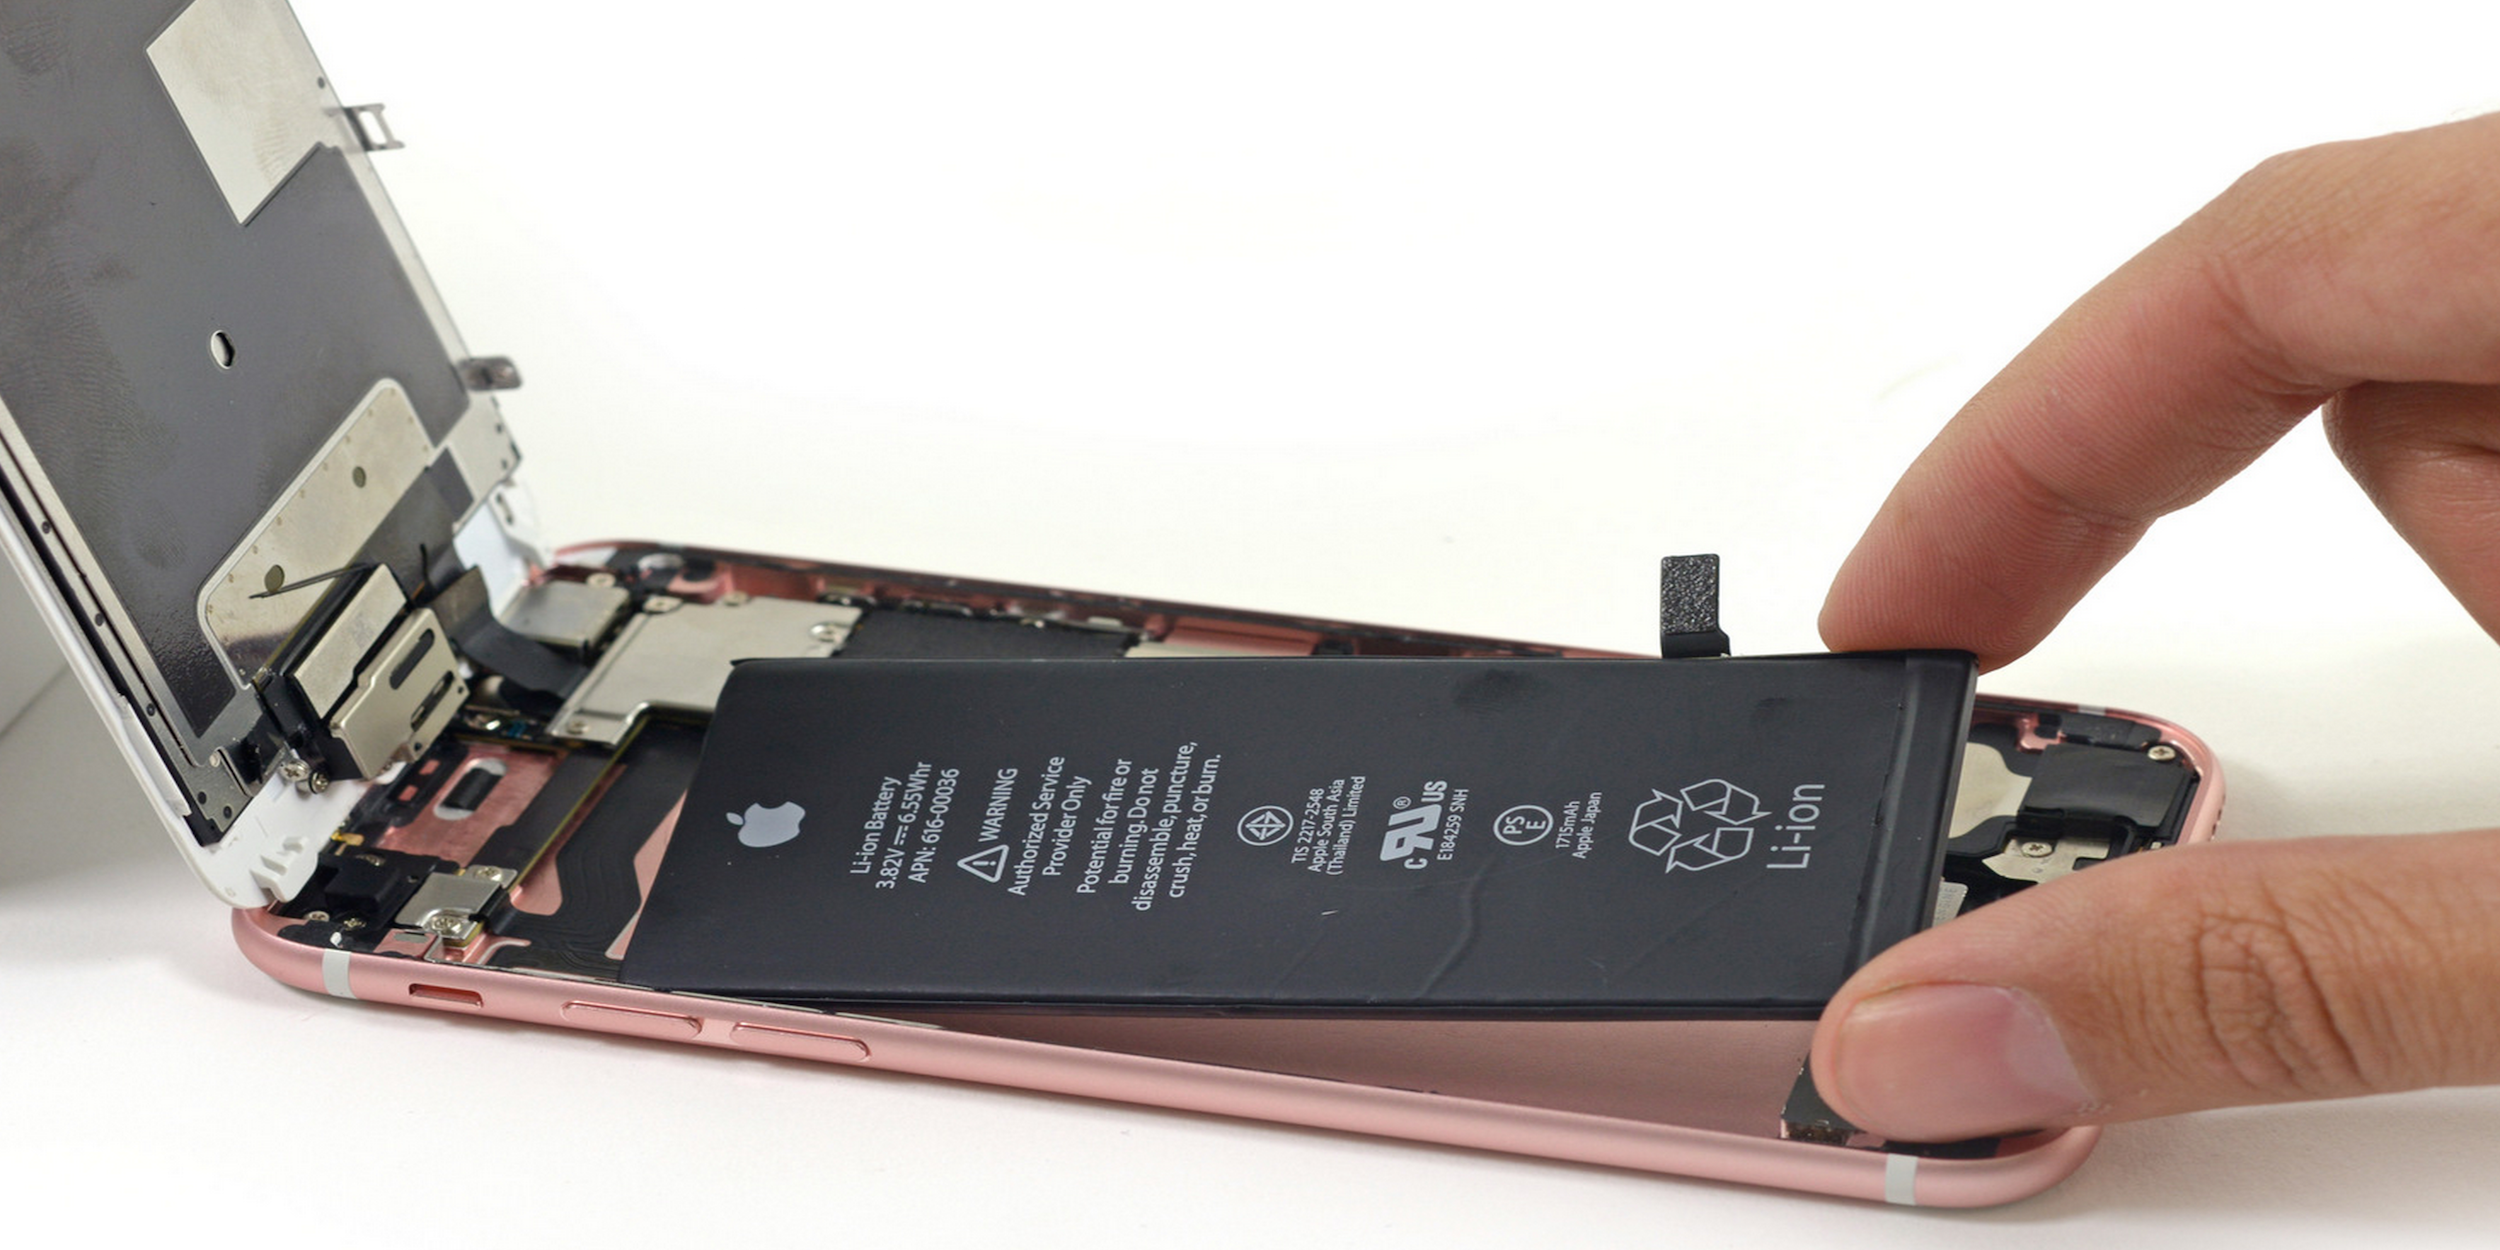 Fat modify your iPhone Battery, increasing work time by 4 times